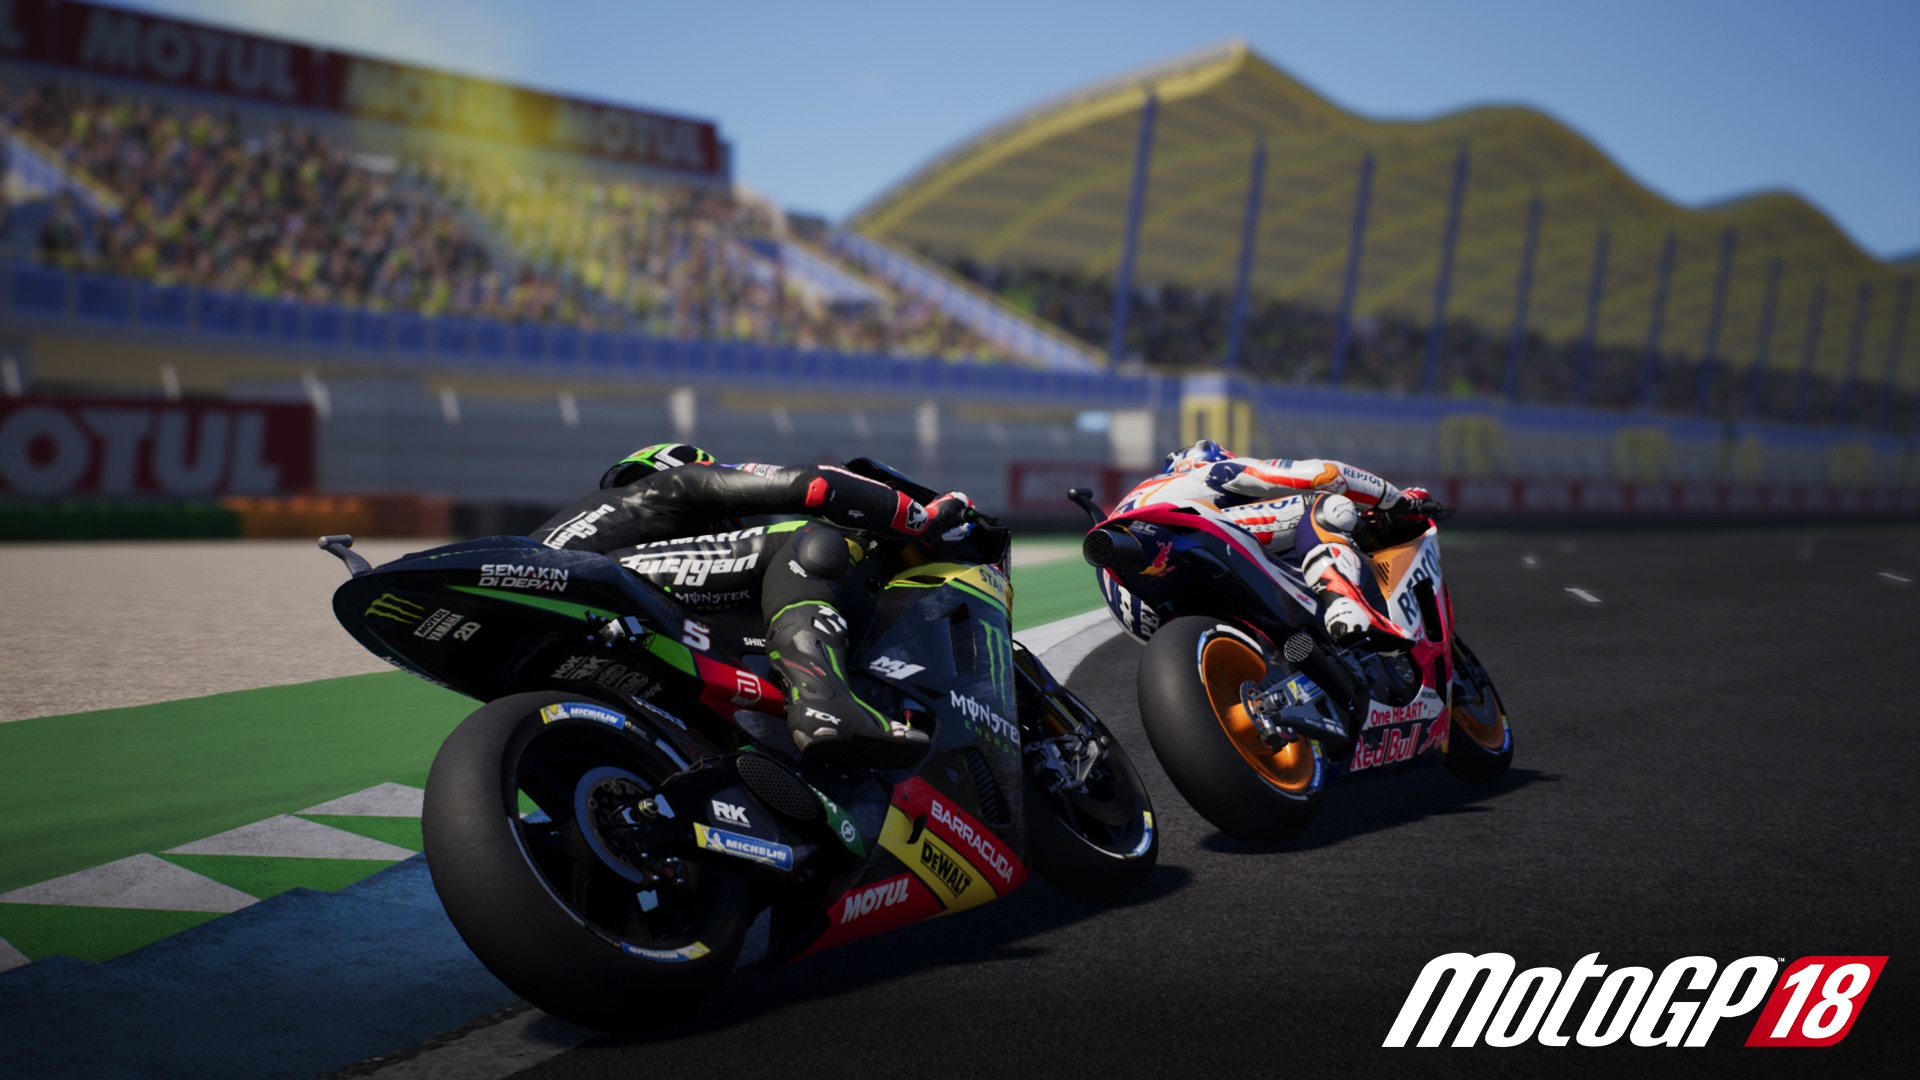 MotoGP 18 Releases on Xbox One, PS4, & PC | SimHeads: Sports